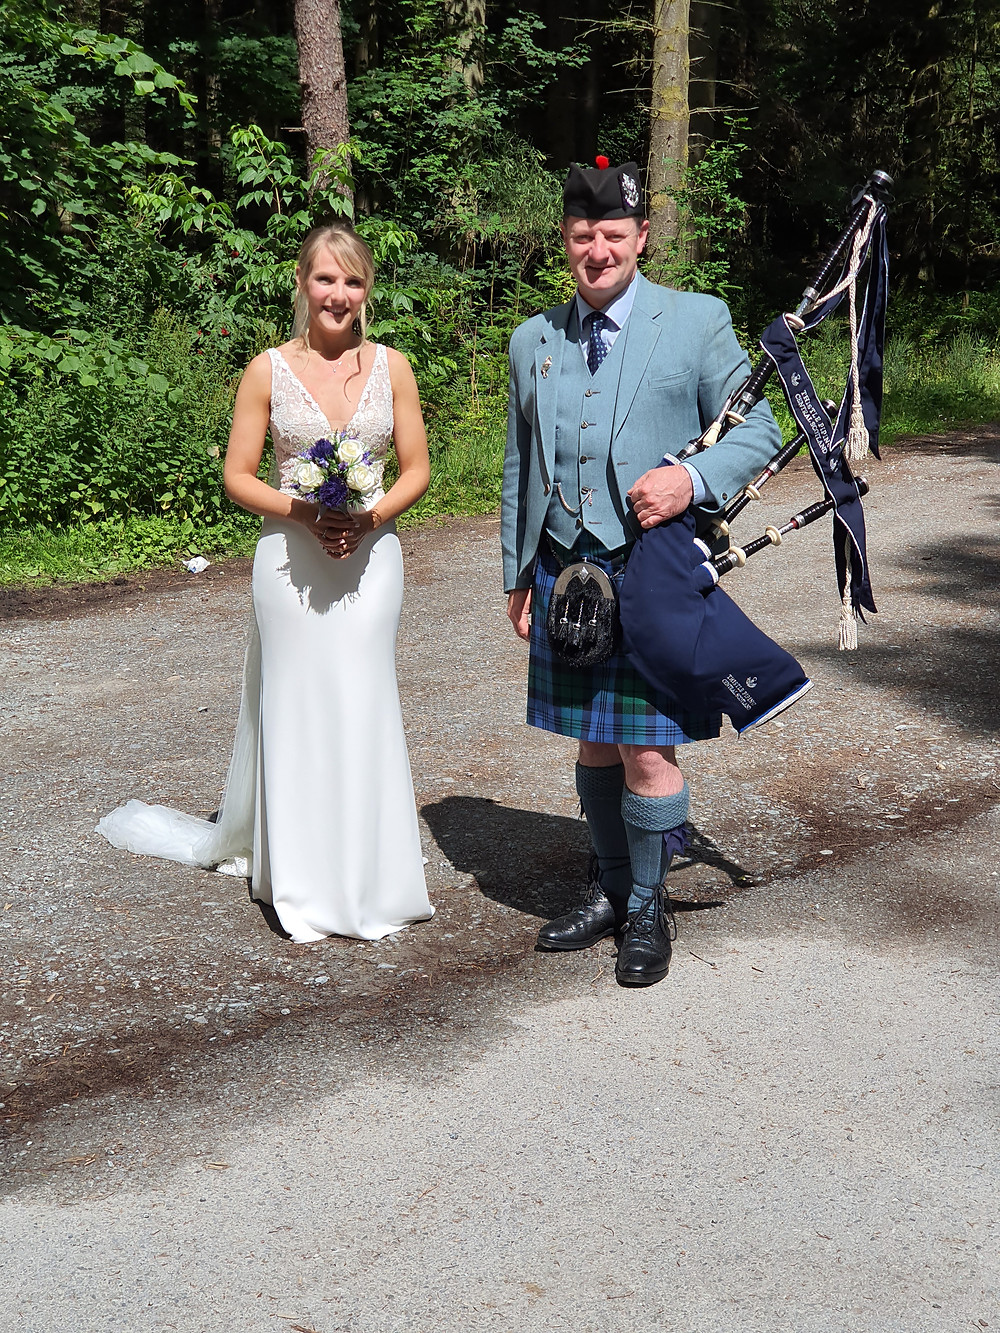 scottish elopement Bride Jennifer and wedding piper Drew Sinclair, Thistle Piping Central Scotland. Dunmore Loch